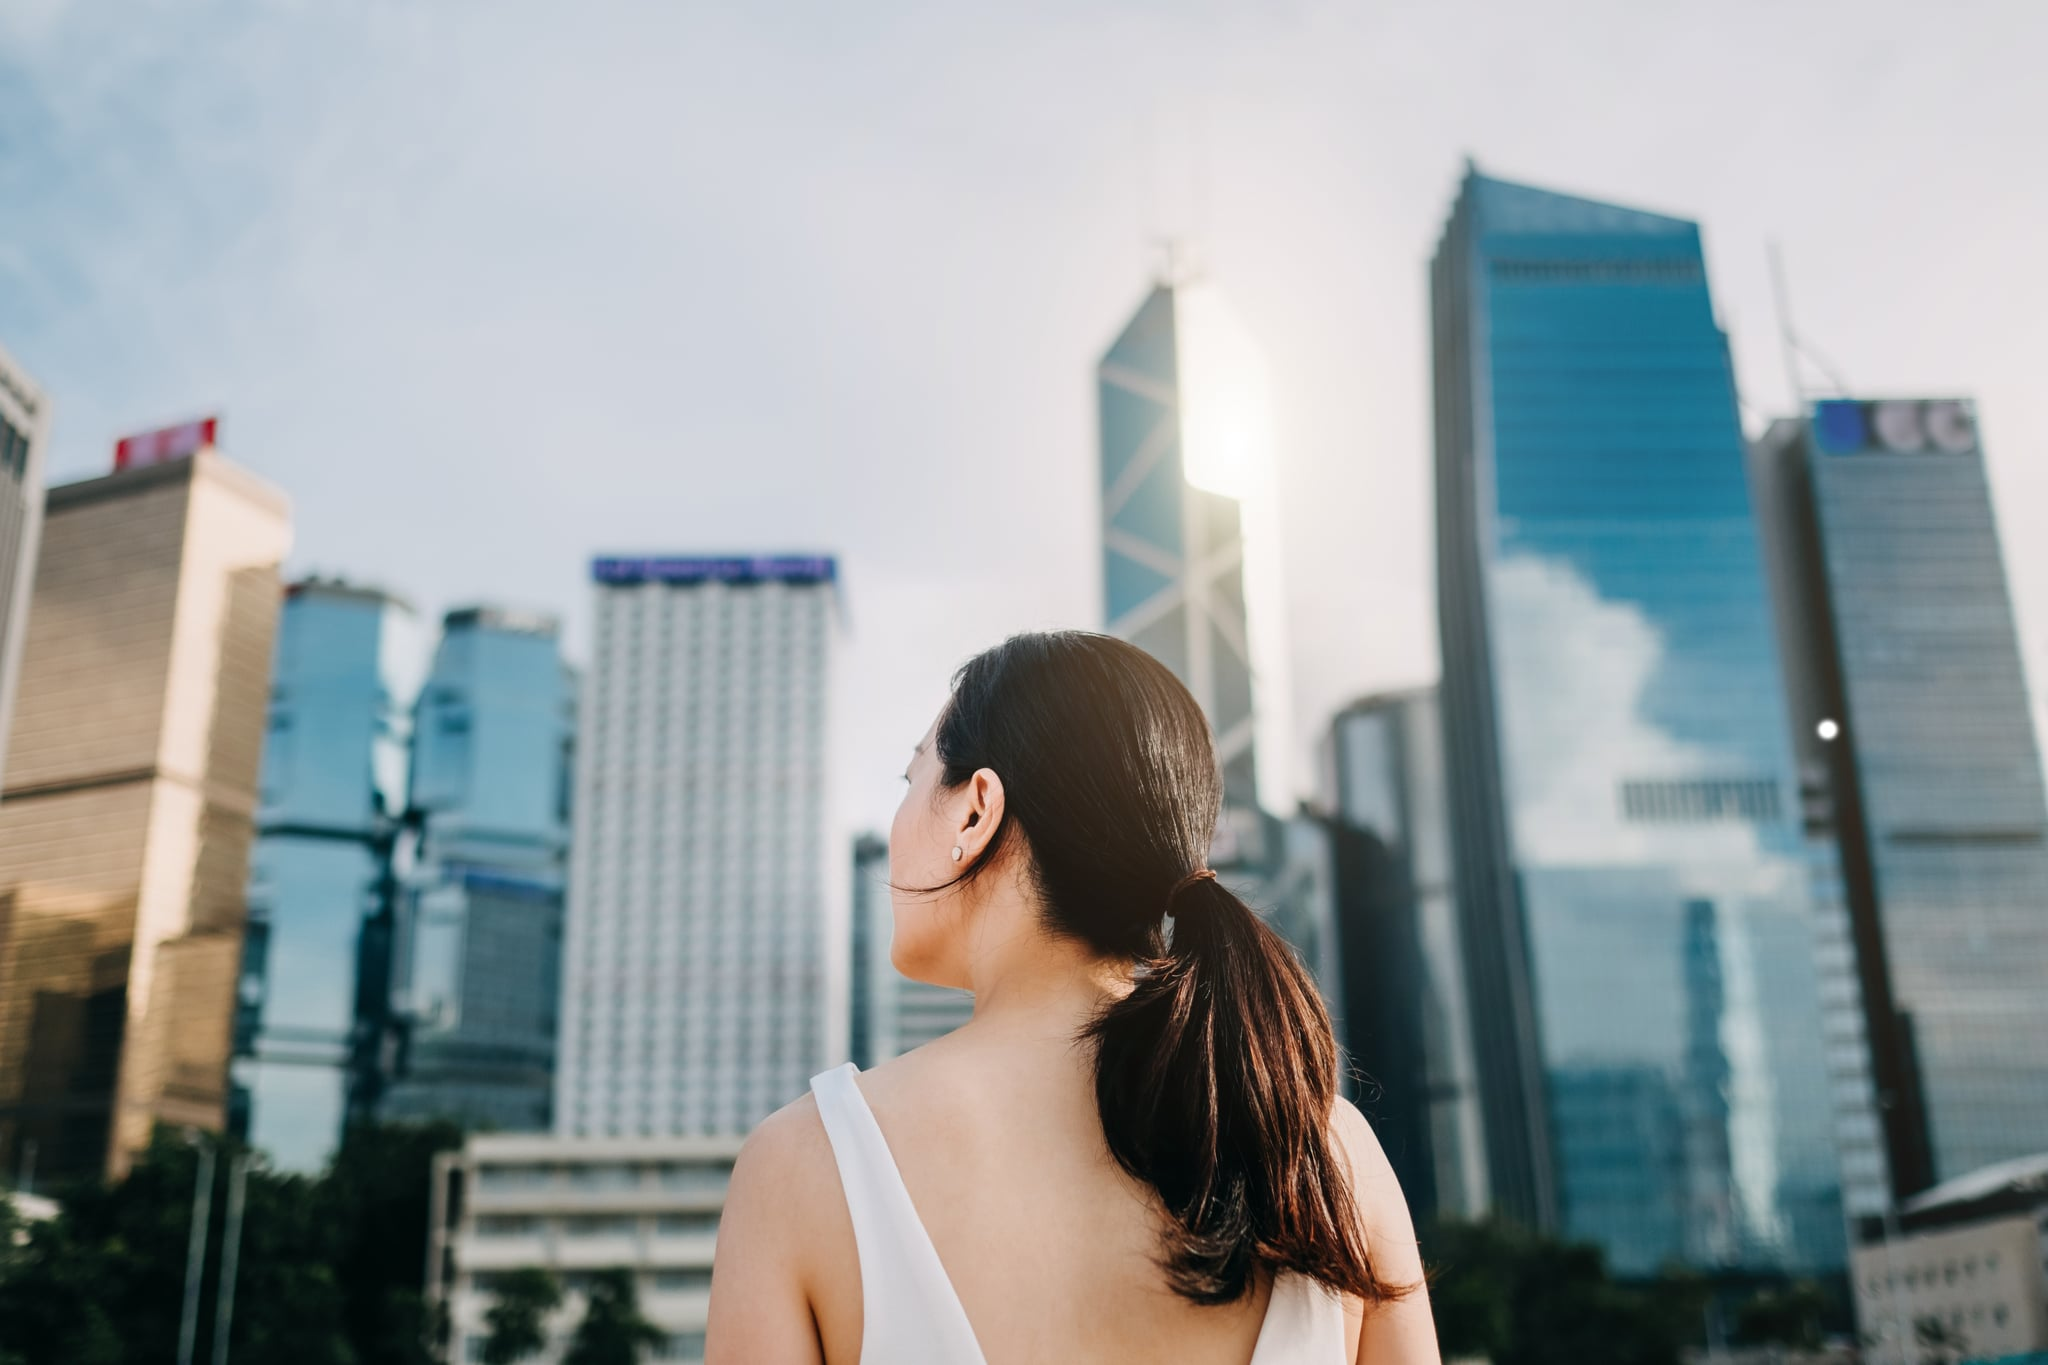 Rear view of ambitious businesswoman looking towards the urban financial towers in Central Business District